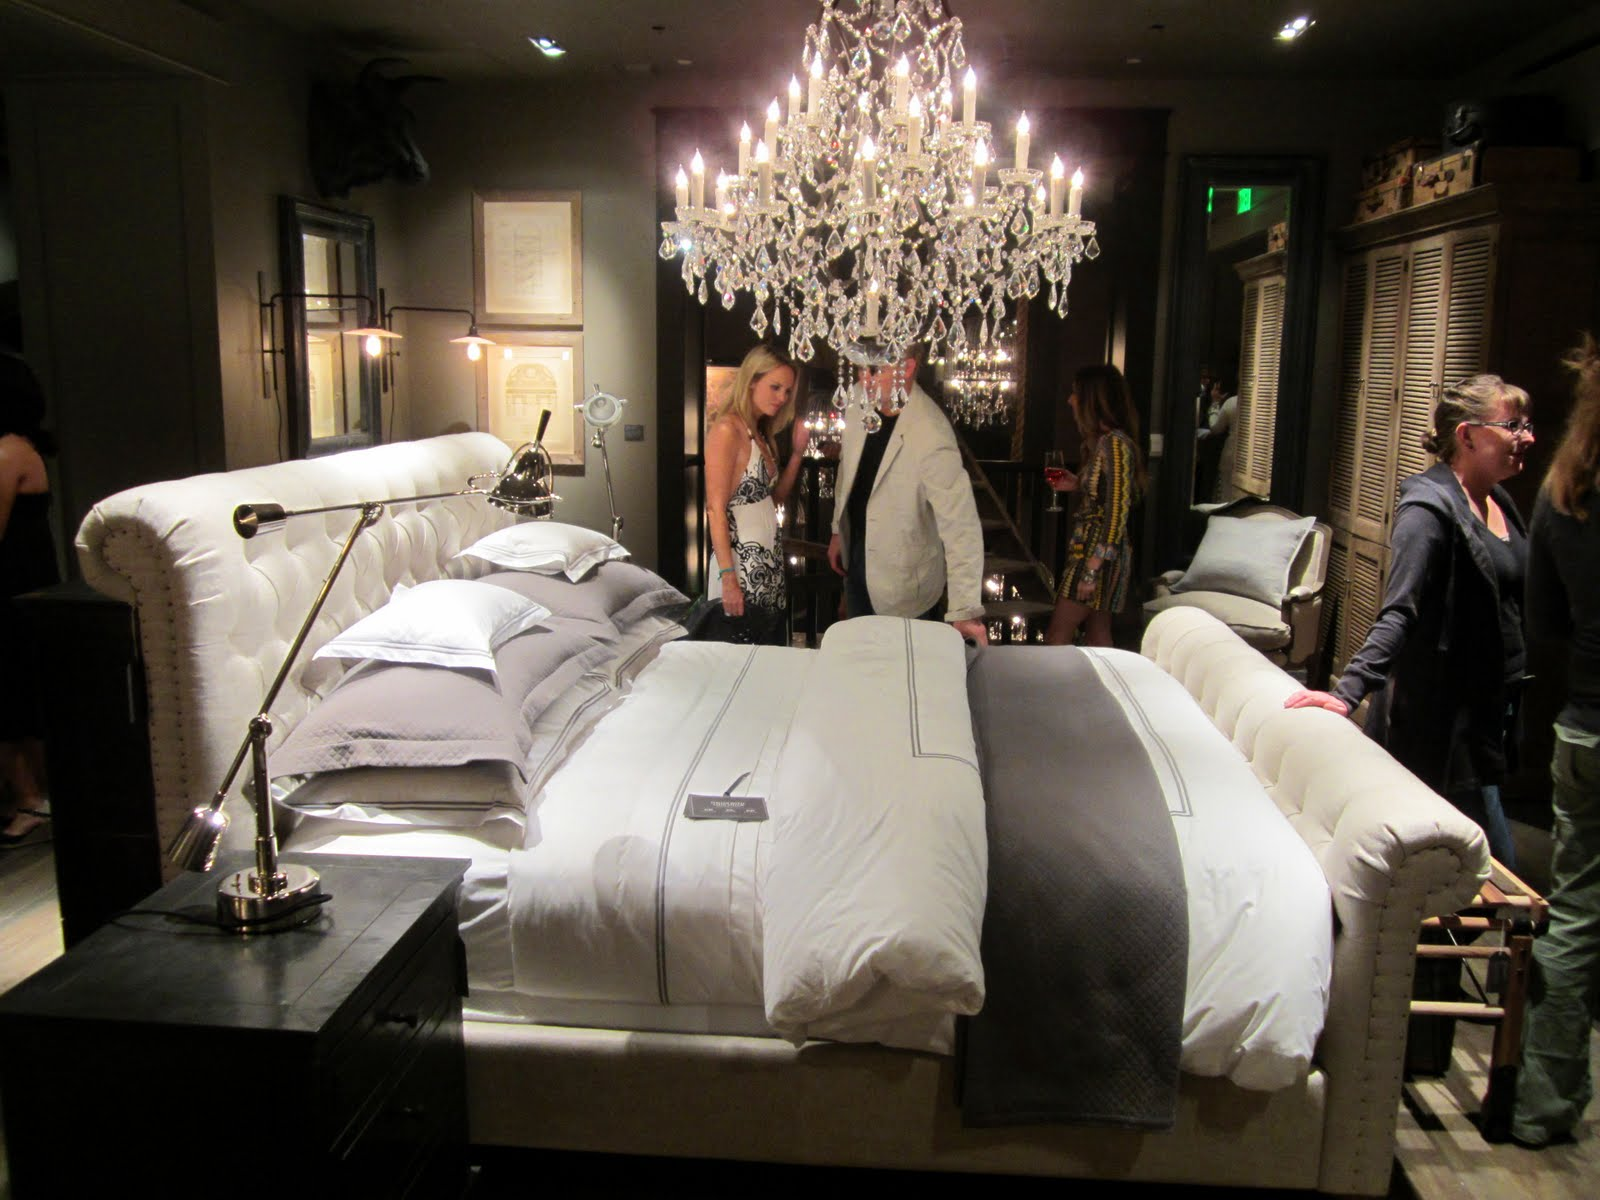 Restoration hardware bedroom - Bedroom In The New Restoration Hardware With A White Tufted Sleigh Bed And Grey And White